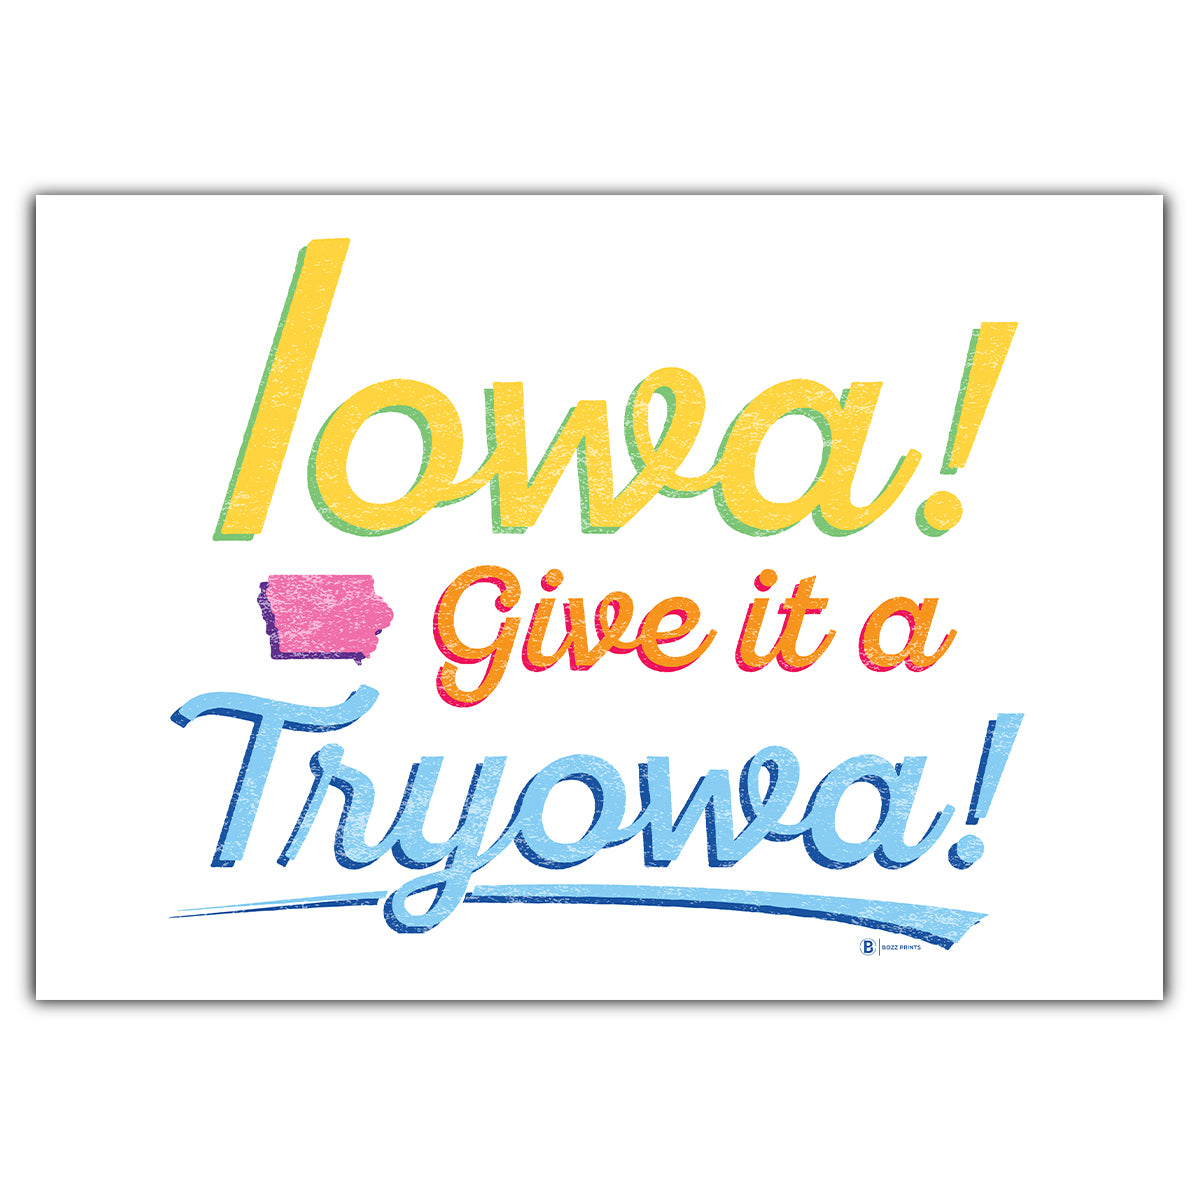 Iowa! Give it a Tryowa! White Greeting Card